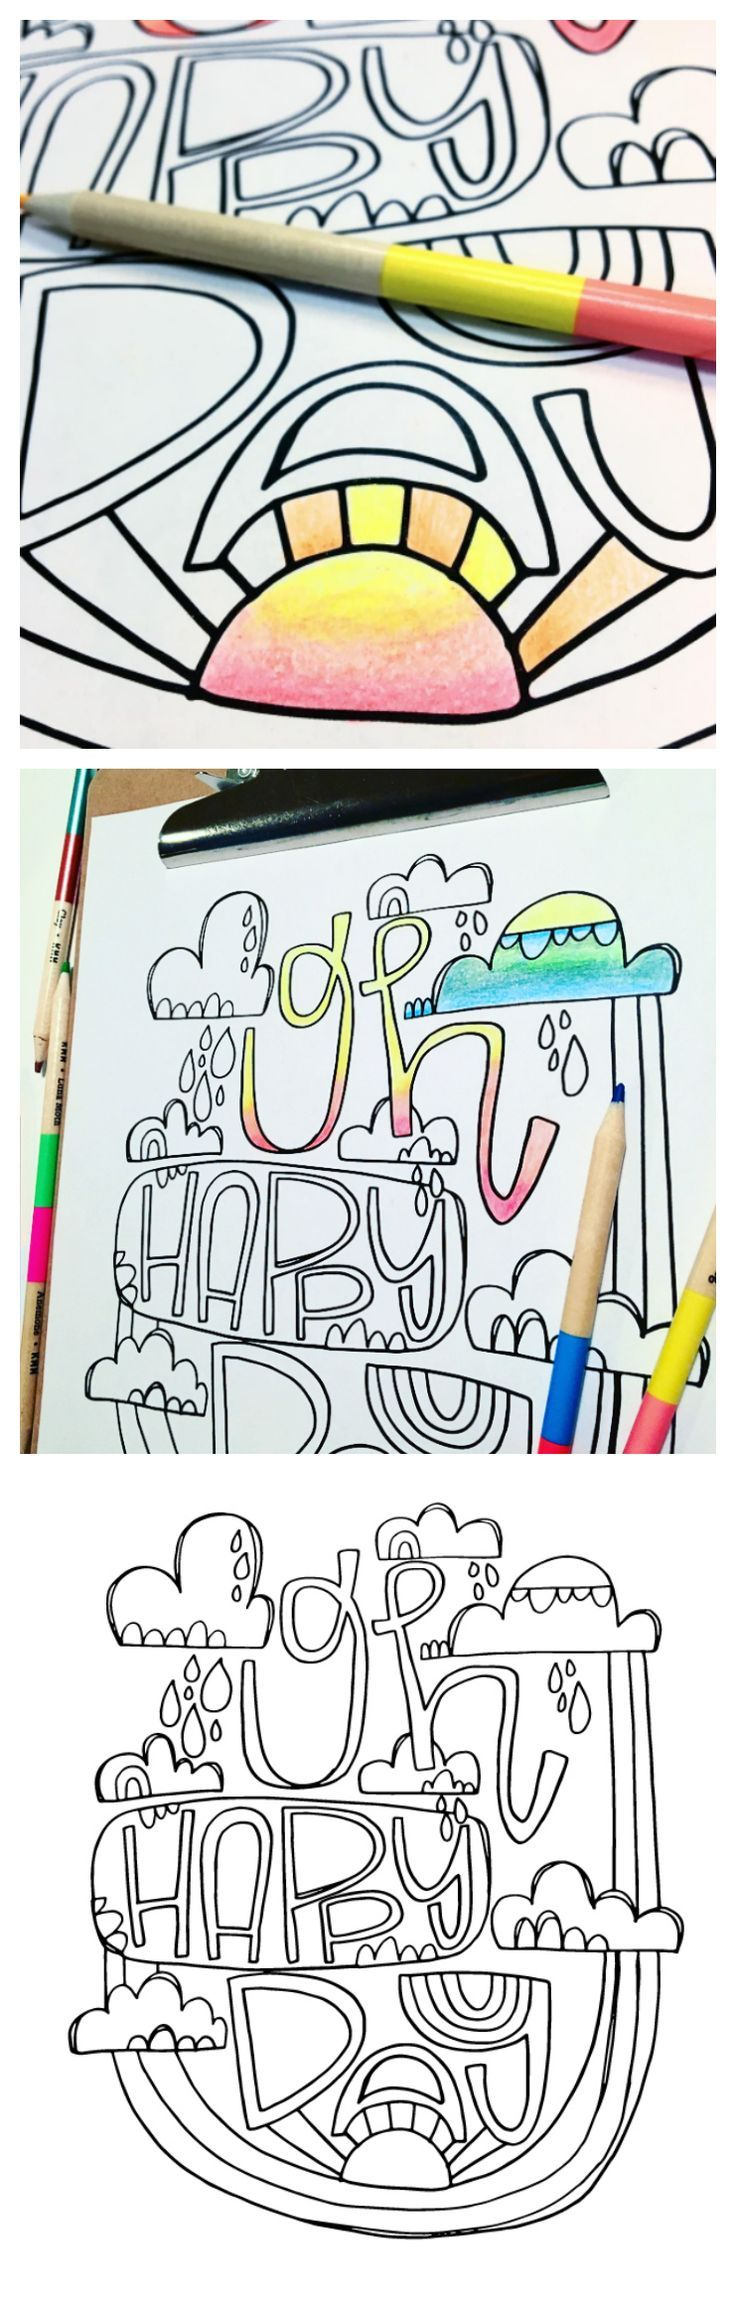 Free Coloring Page - Oh Happy Day